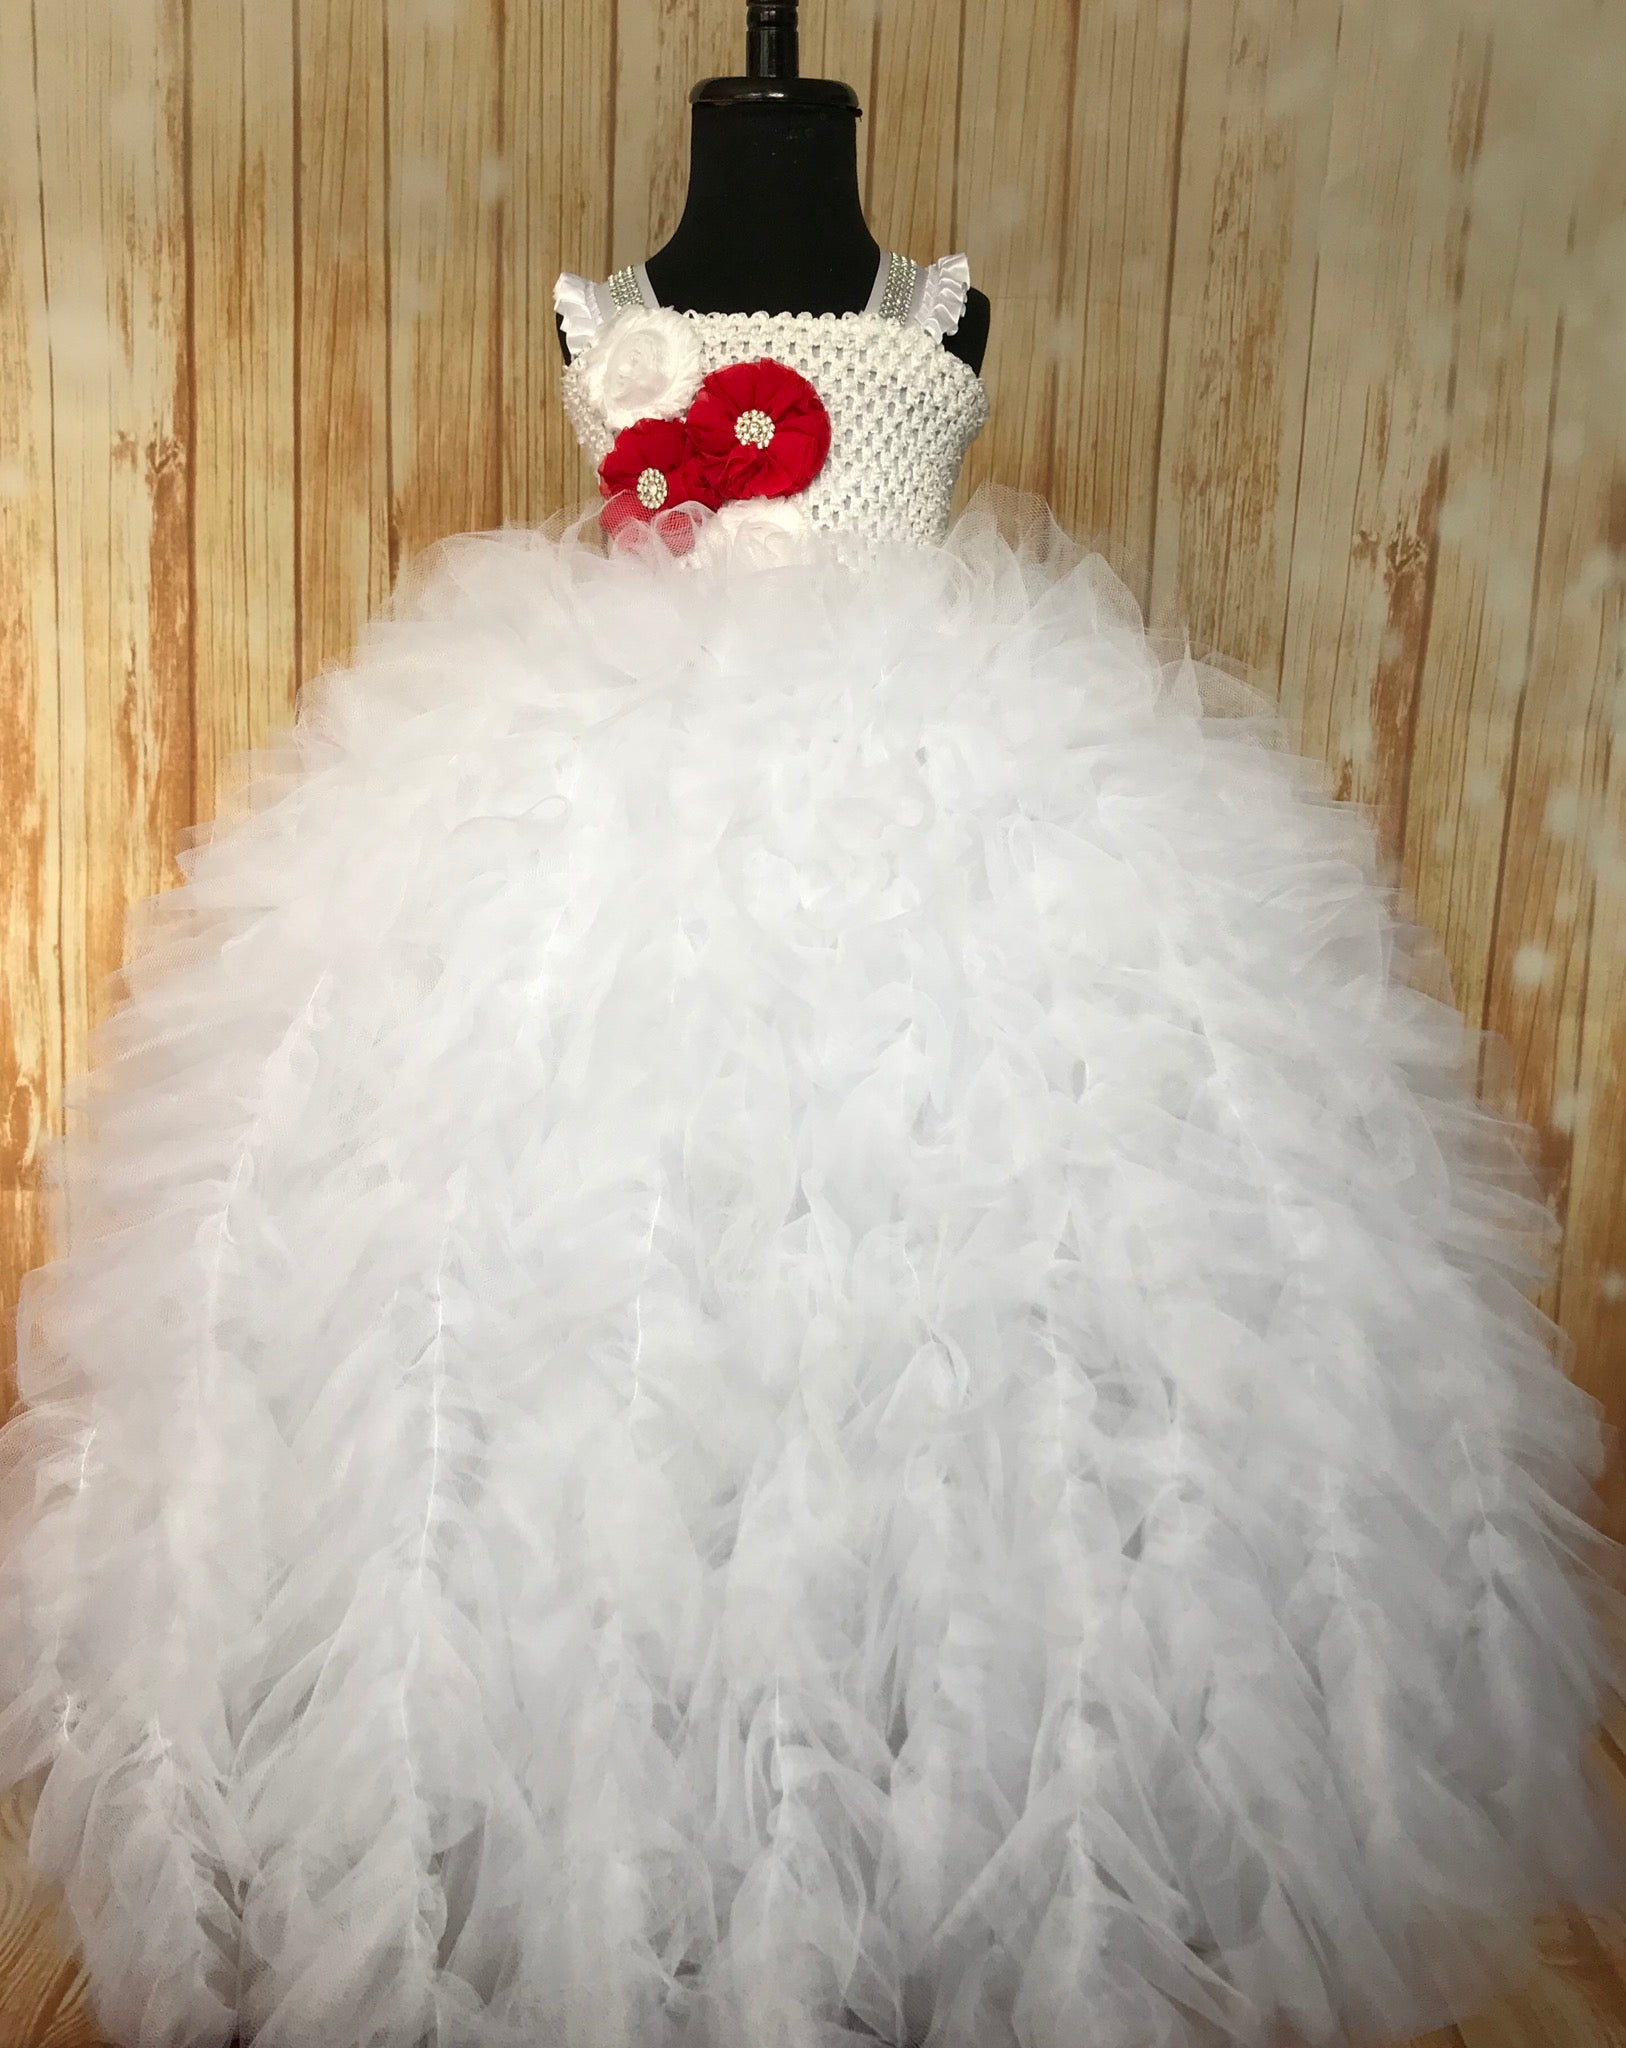 White Tutu, White Tutu Dress, Girls White Gown, White Wedding, White Flower Girl Tutu, White Pageant Tutu, White Ruffle Tutu Dress, White Party Tutu - Little Ladybug Tutus